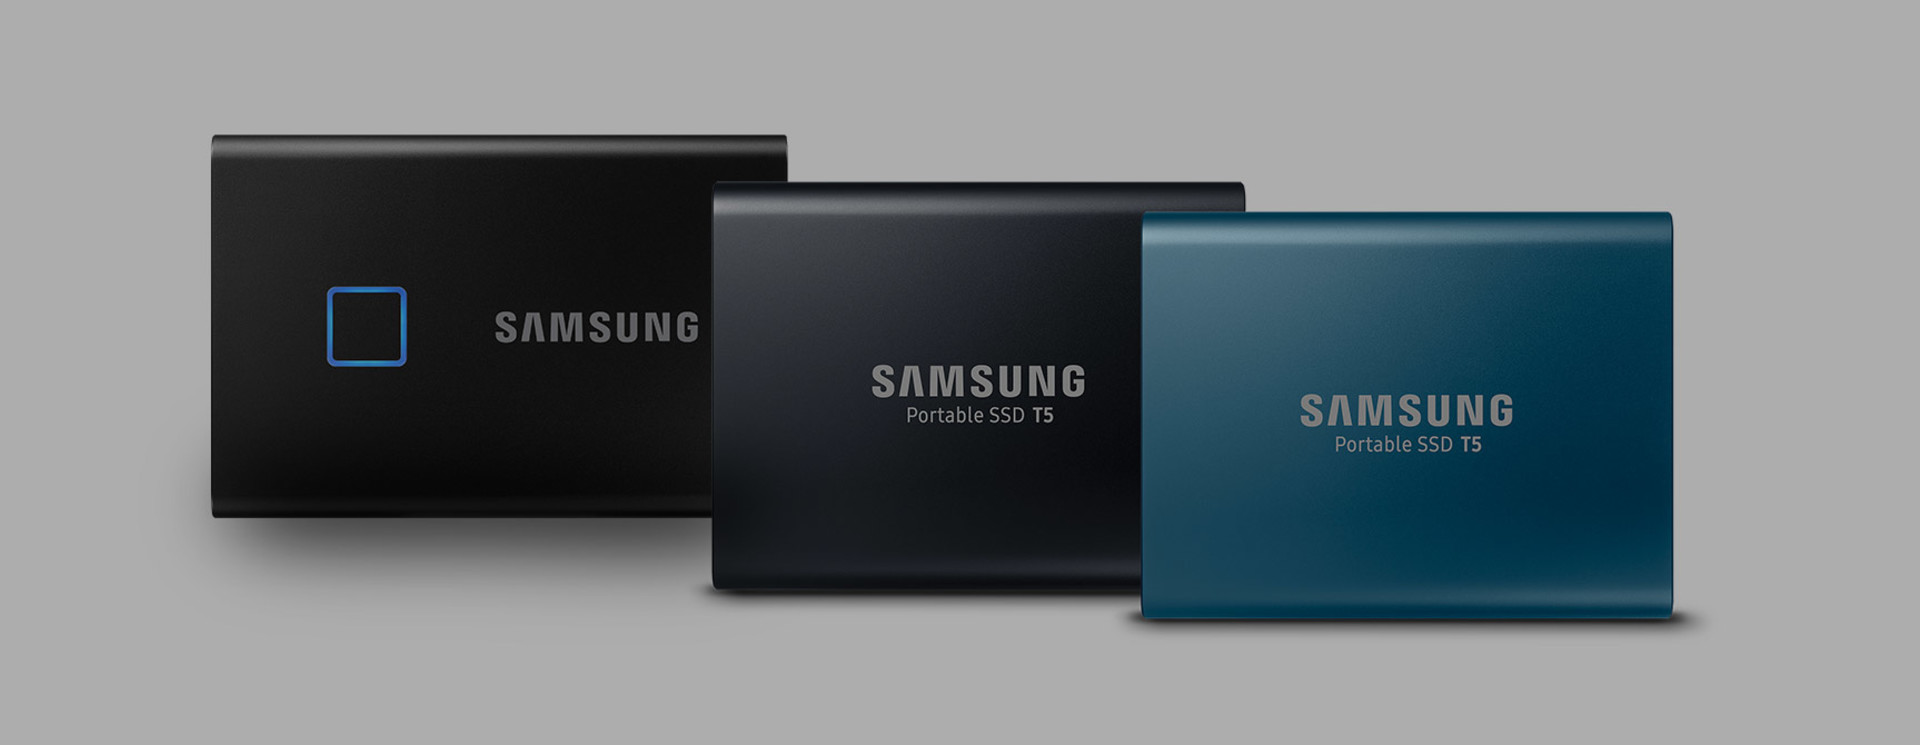 Samsung Portable SSD T7 Touch, T5 & T3 Sleeves & Cases